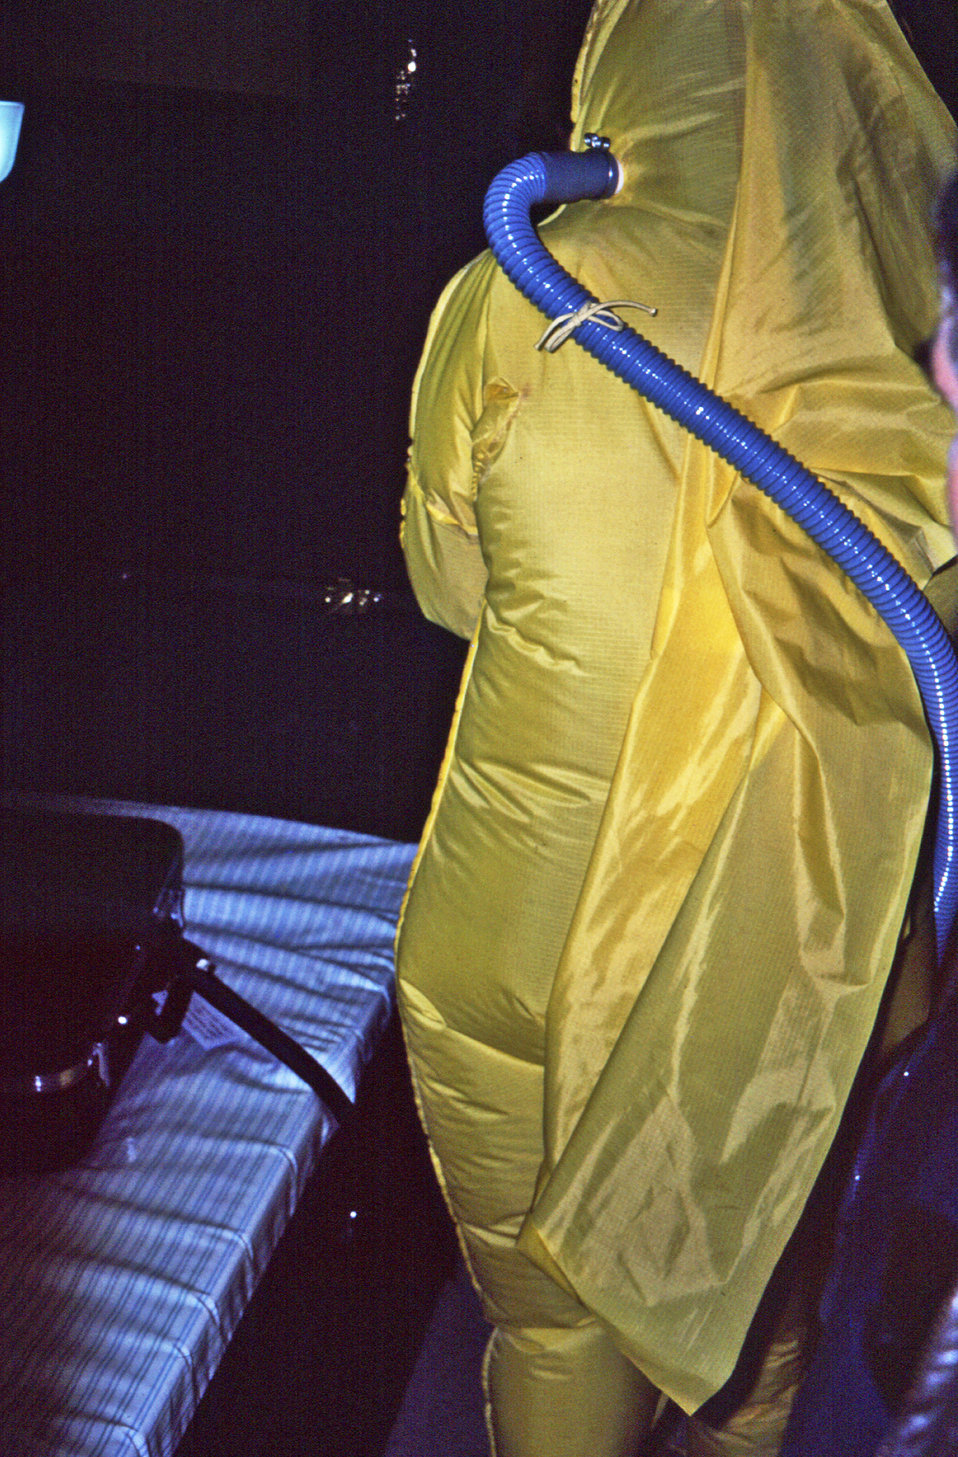 This 1976 photograph was taken during a medical quarantine simulation in a mobile quarantine facility (MQF), and depicted the back of an ind